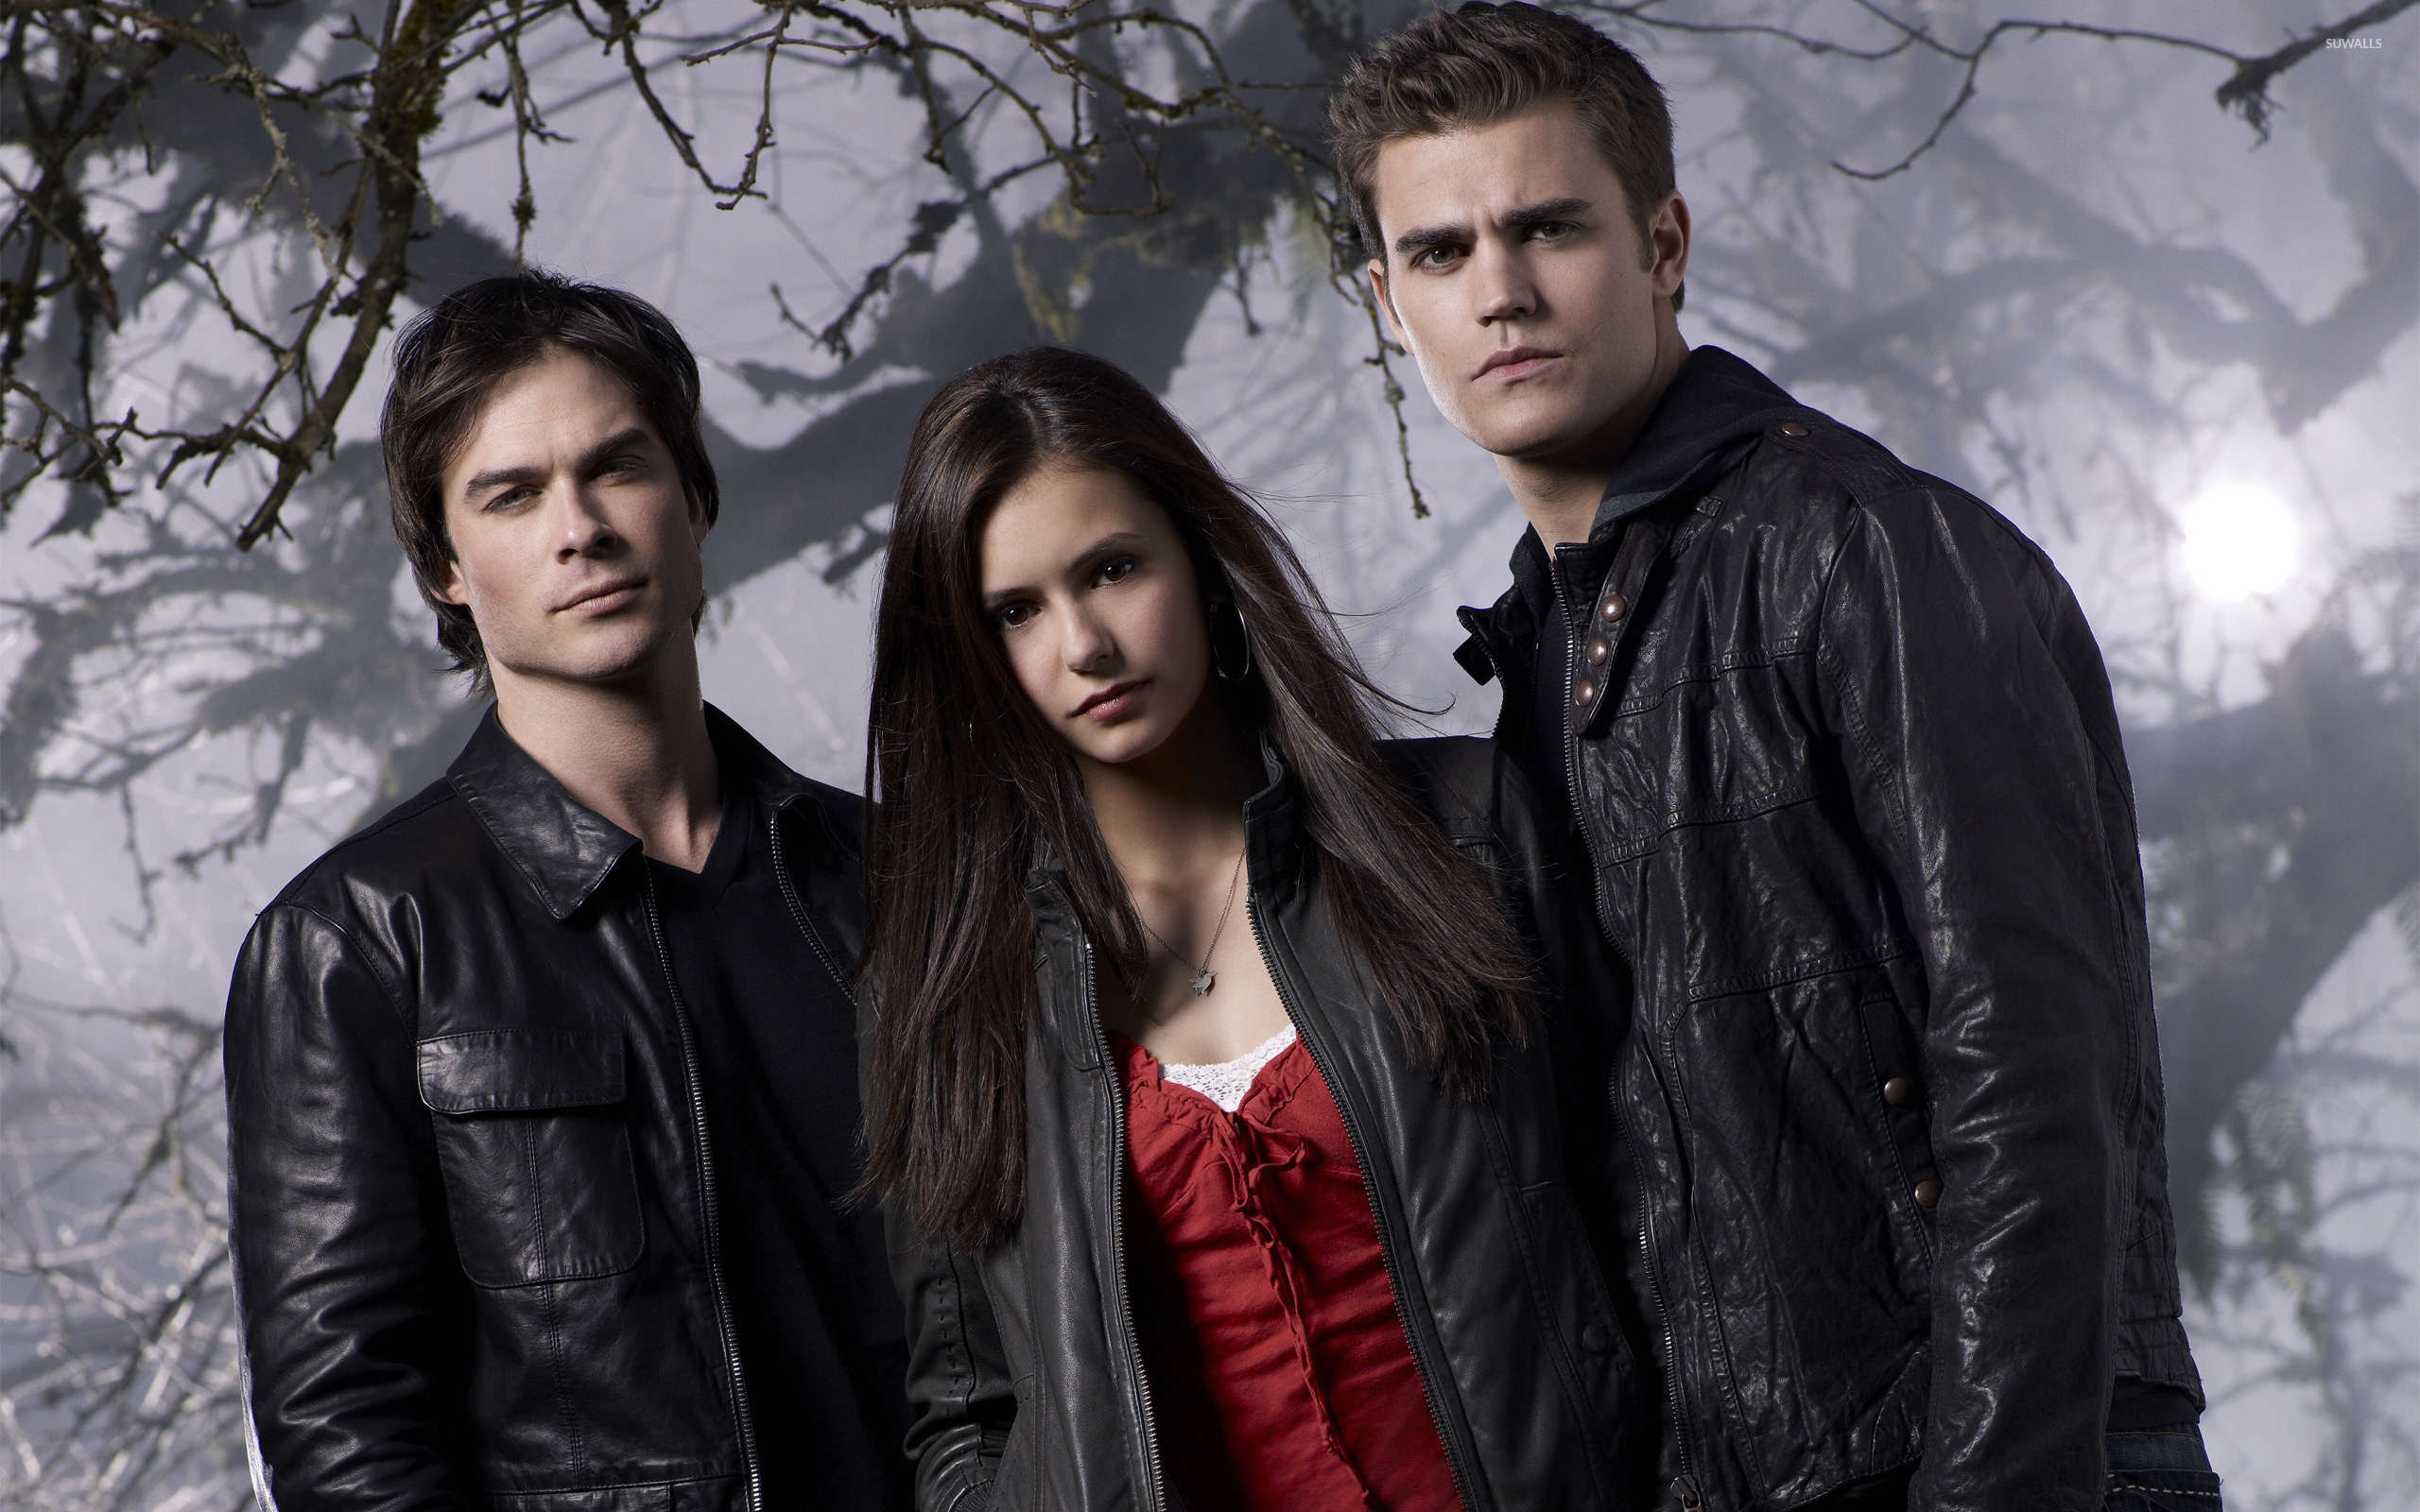 The Vampire Diaries 8 Wallpaper Tv Show Wallpapers 3587